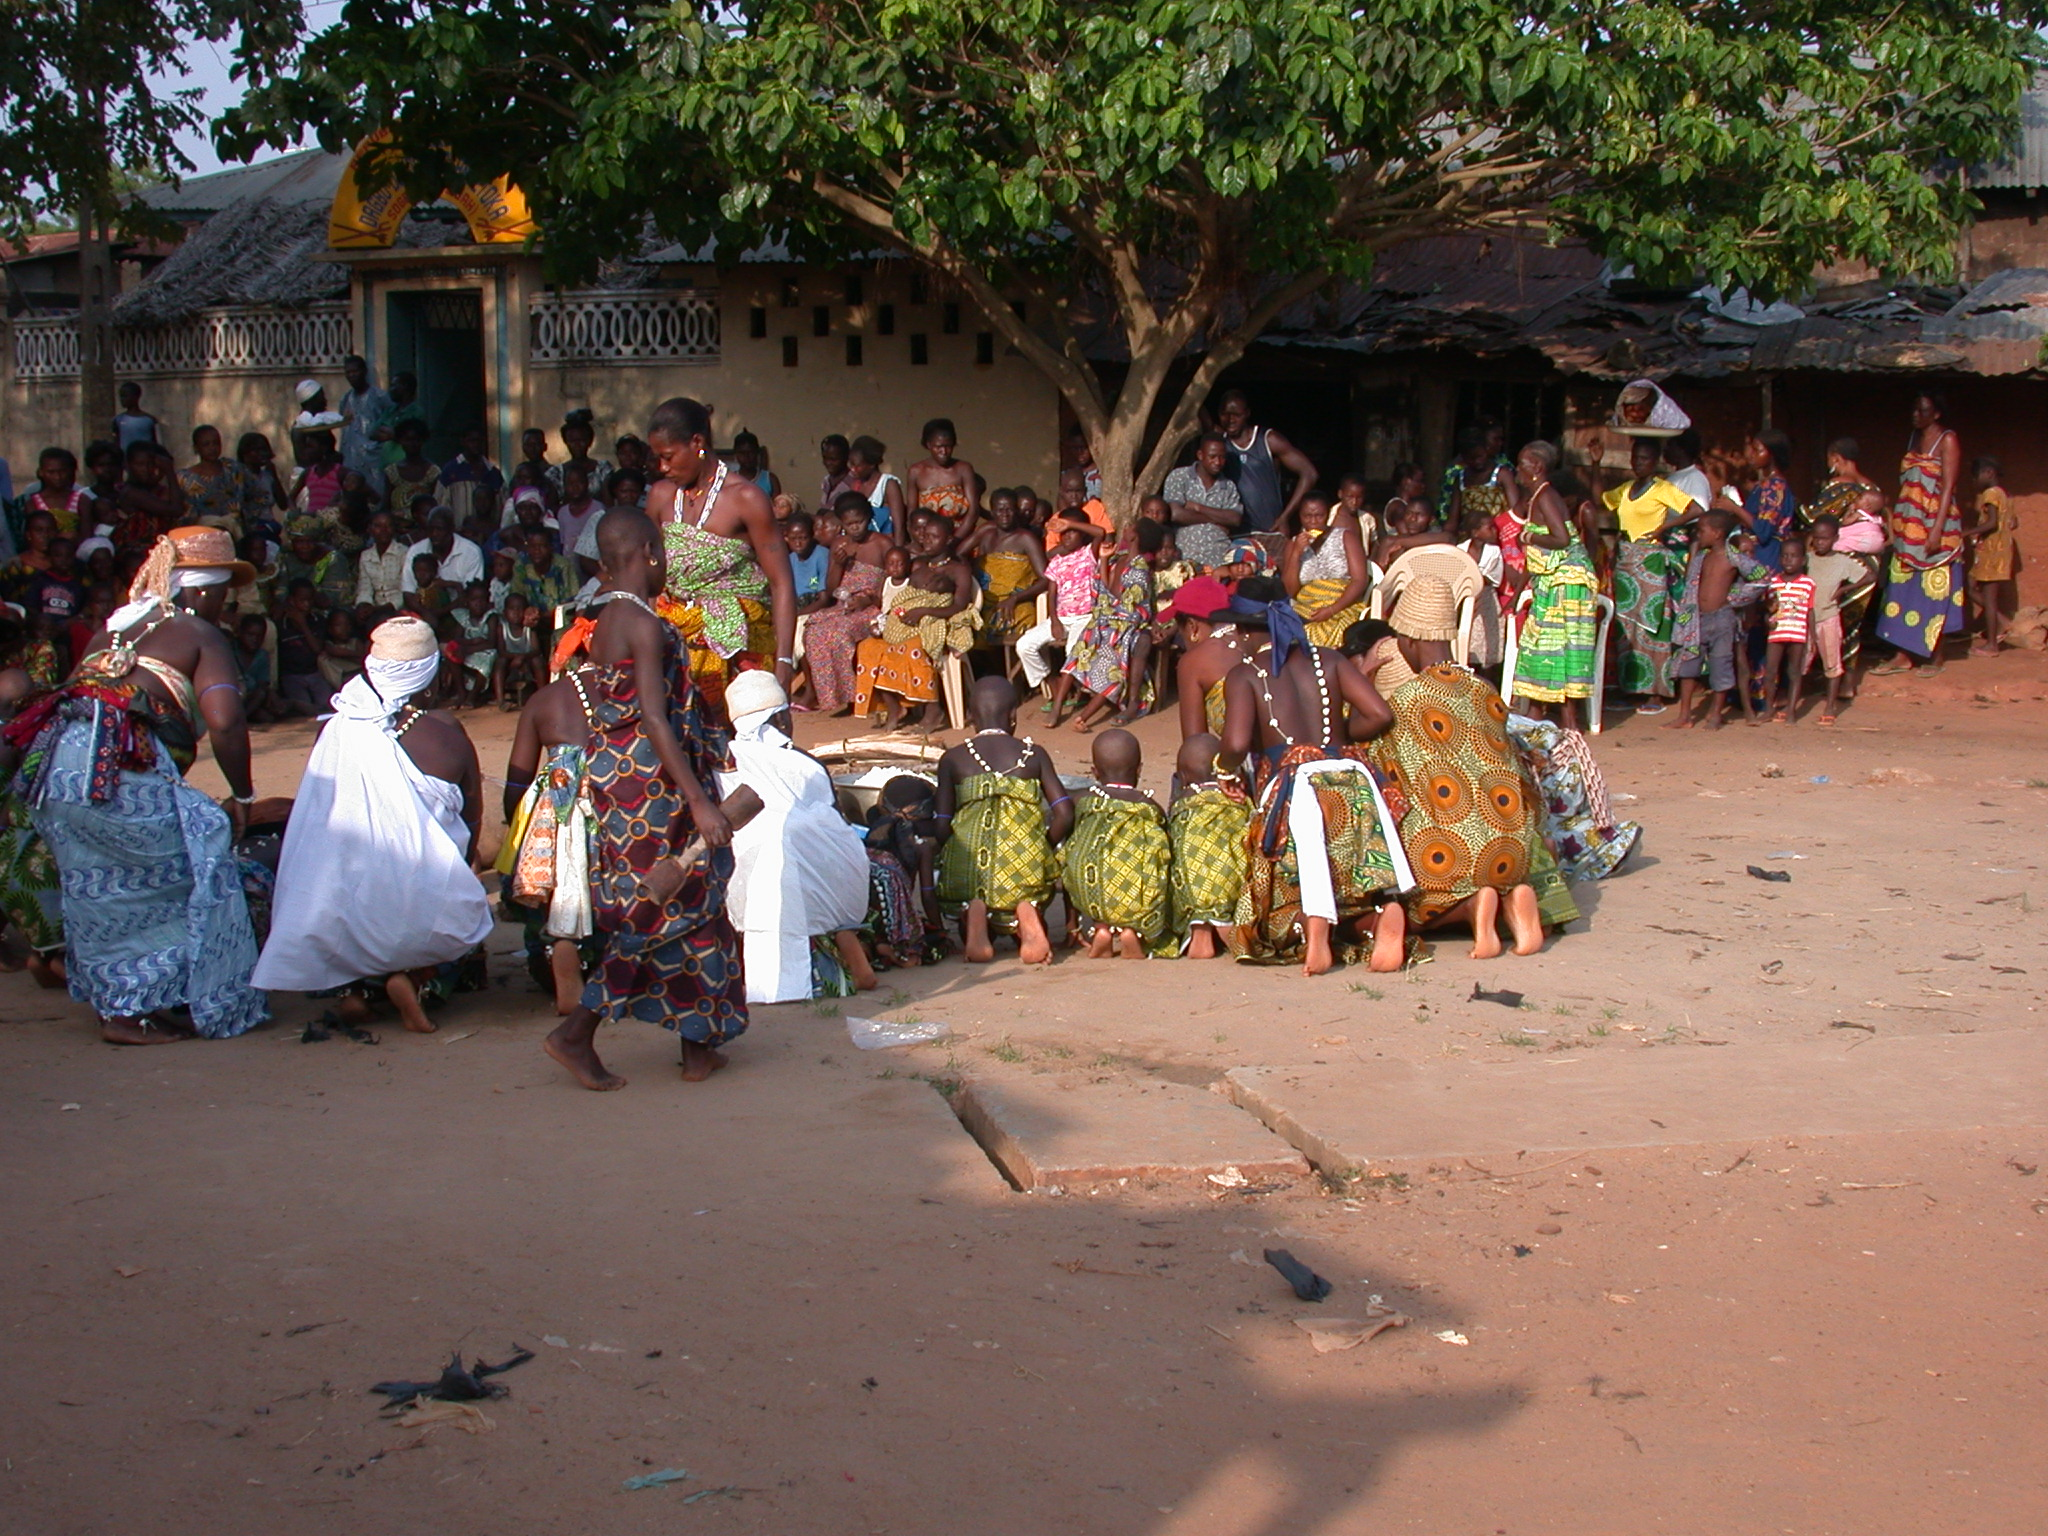 Bowing of Initiates, Vodun Ritual, Ouidah, Benin